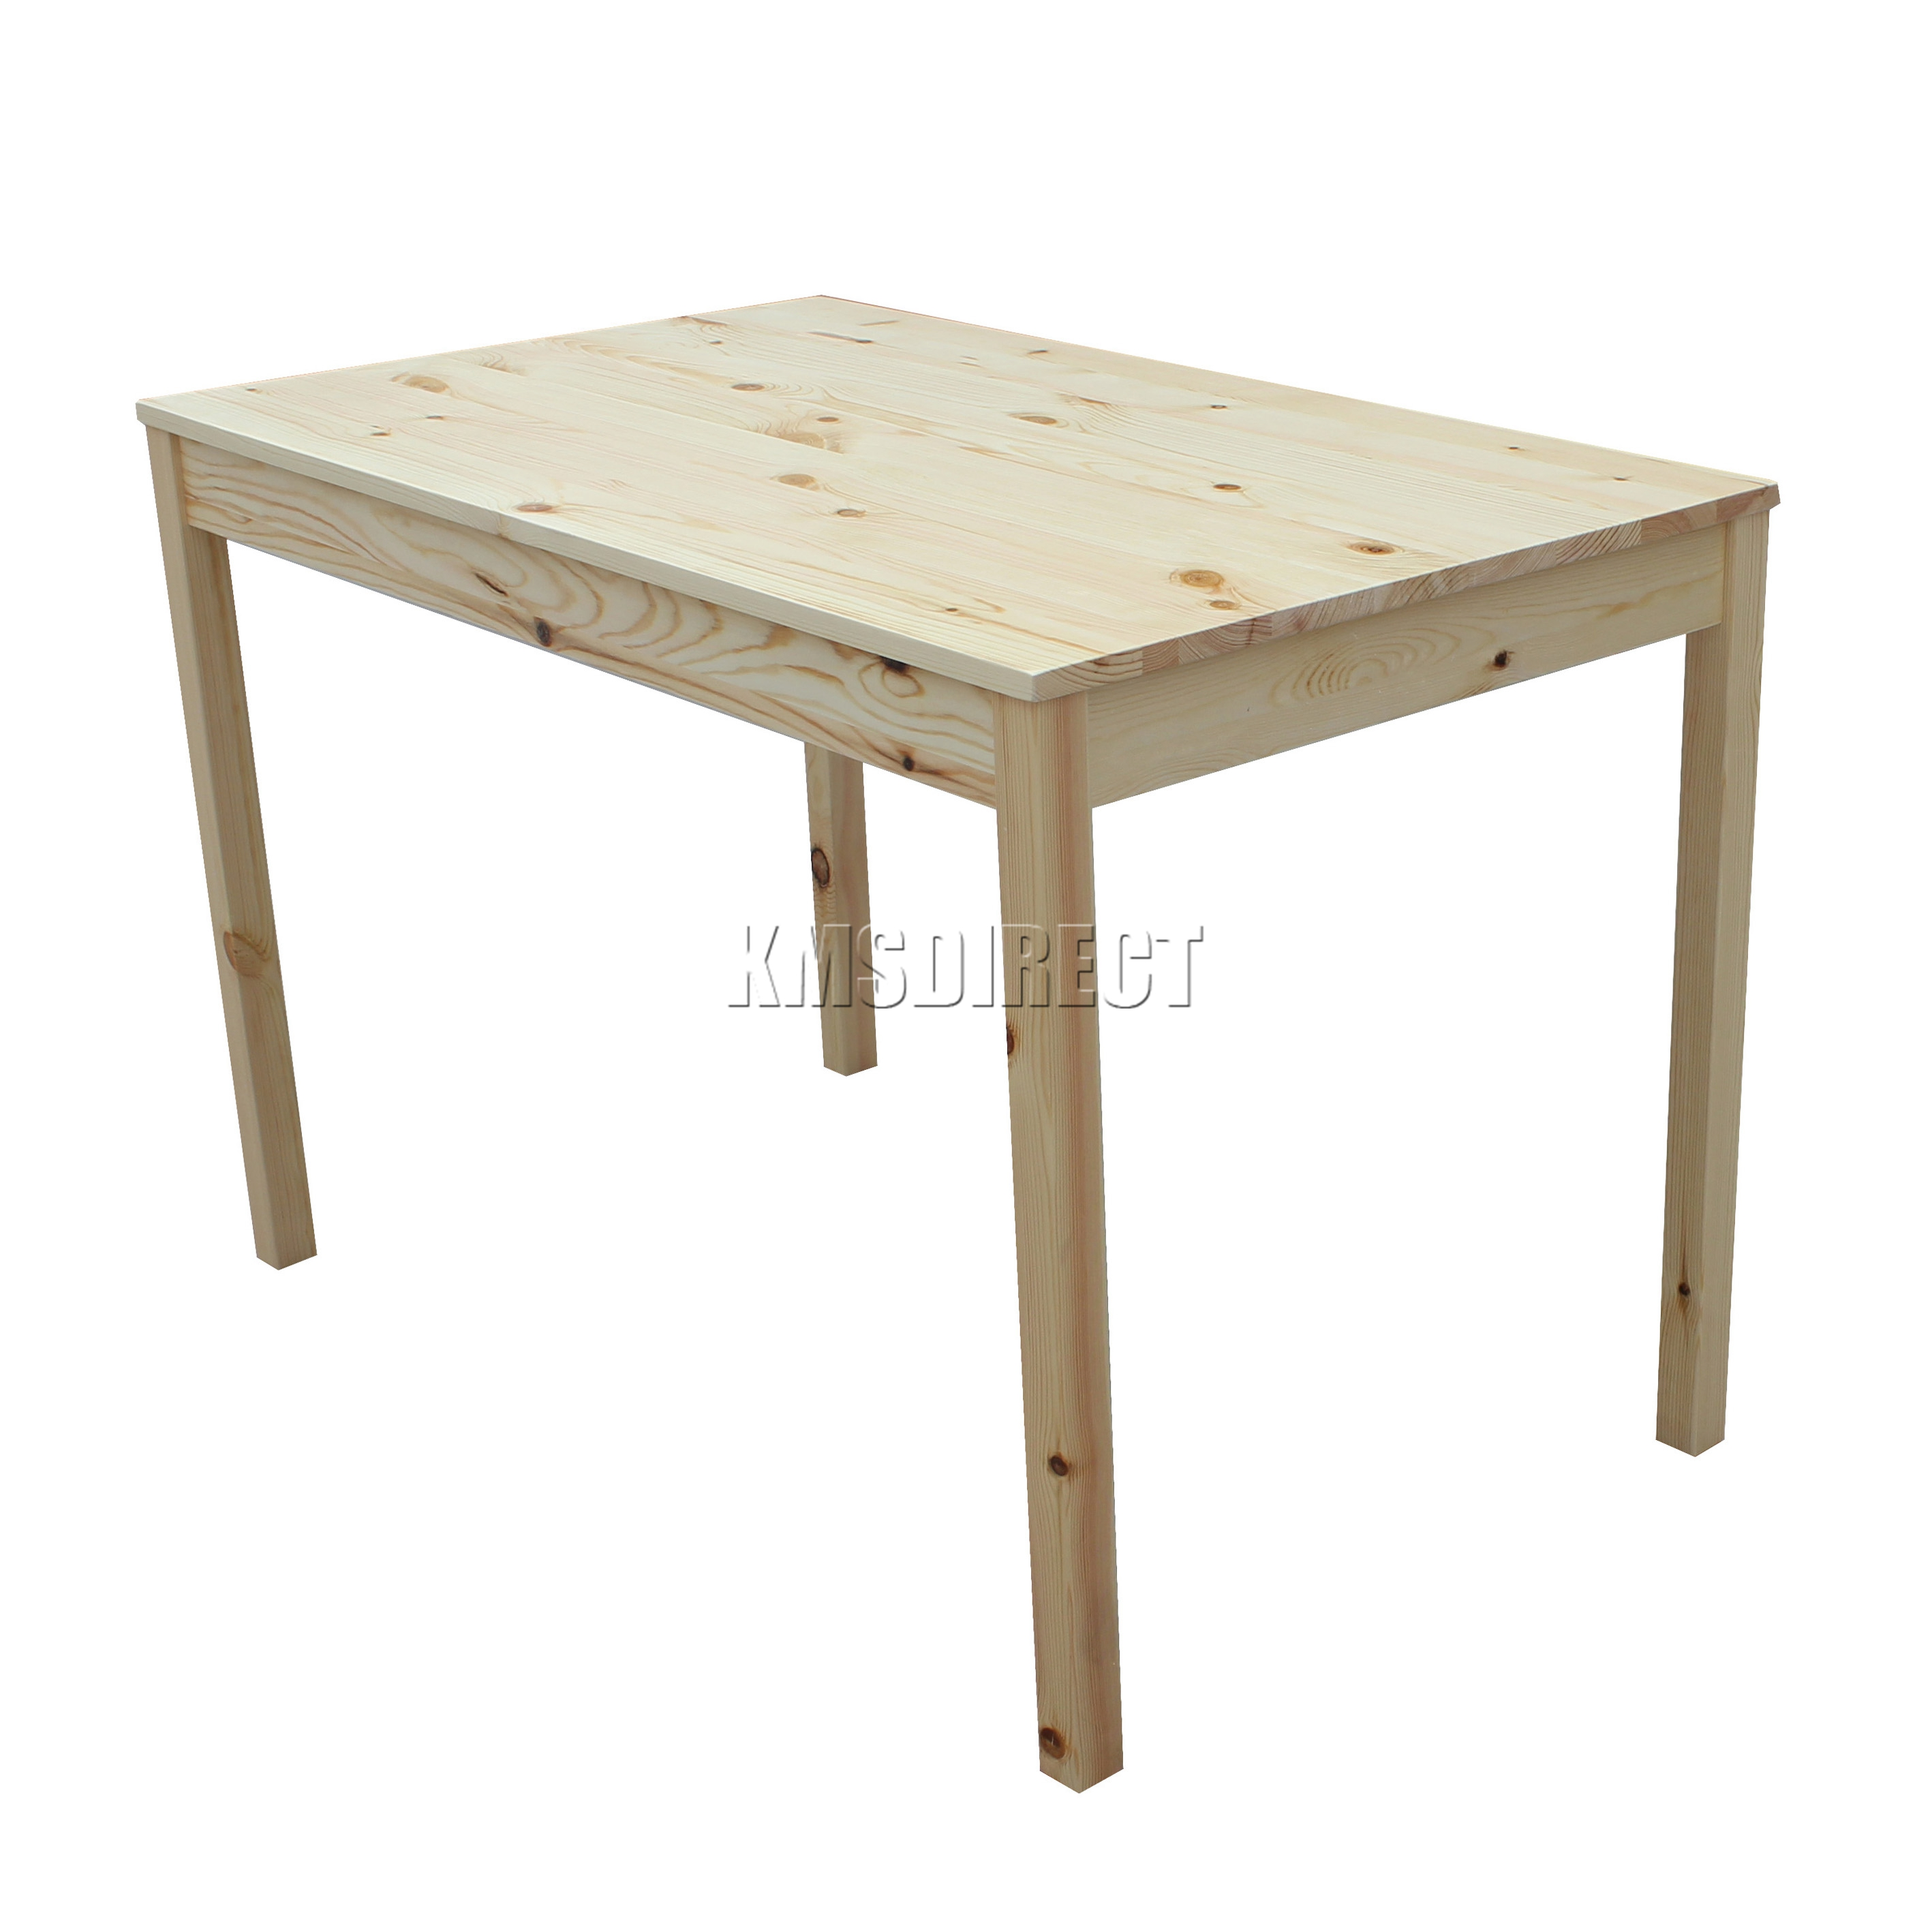 Solid Wood Kitchen Table And Chairs: WestWood Quality Solid Wooden Dining Table And 4 Chairs